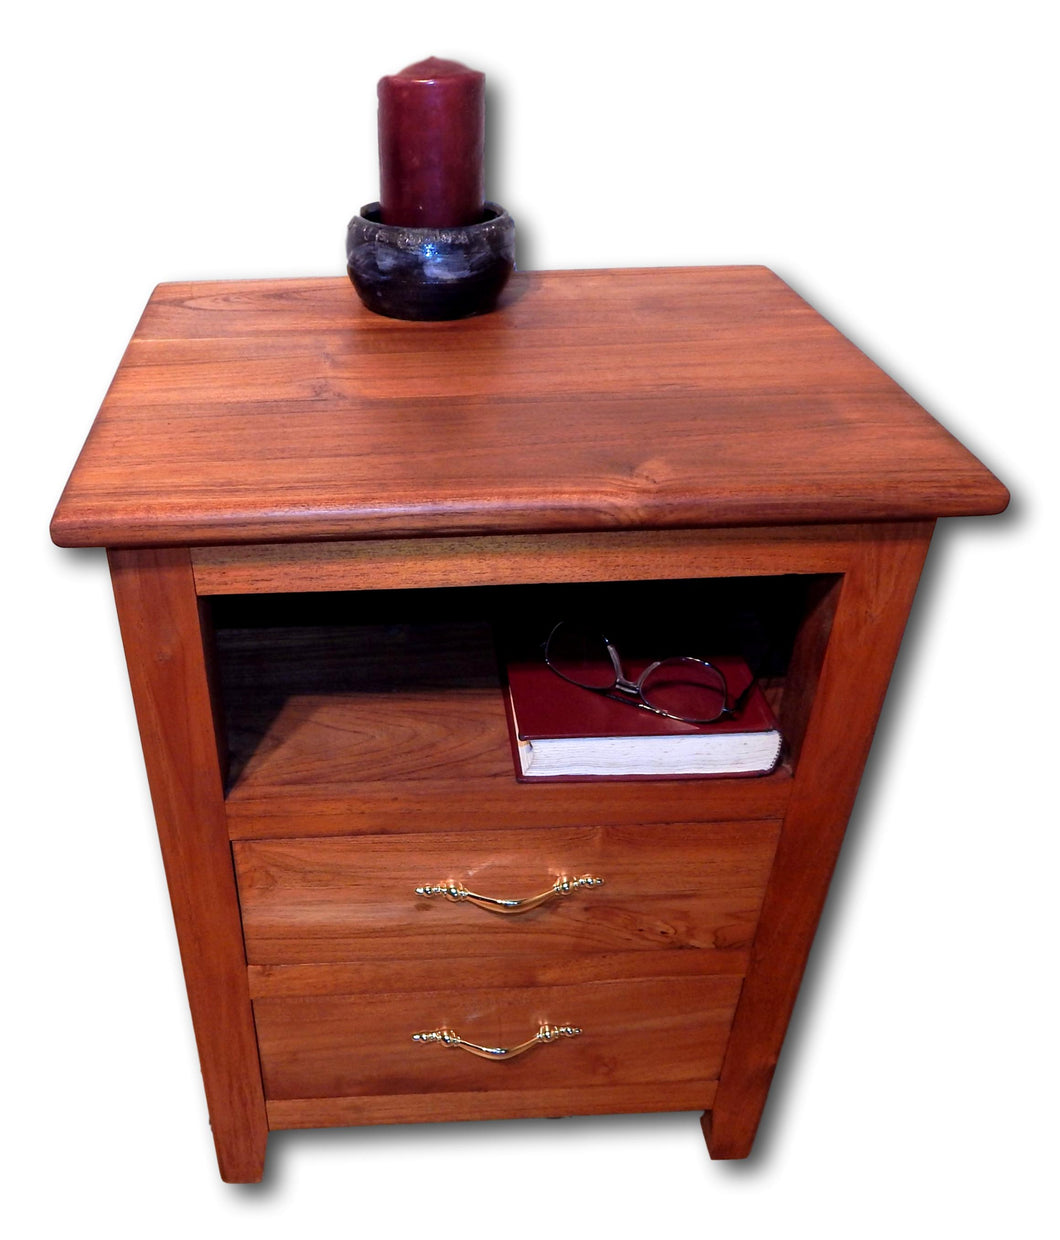 Side tables & nightstands handcrafted from teak wood, salvaged wood, solid wood furniture & reclaimed woods